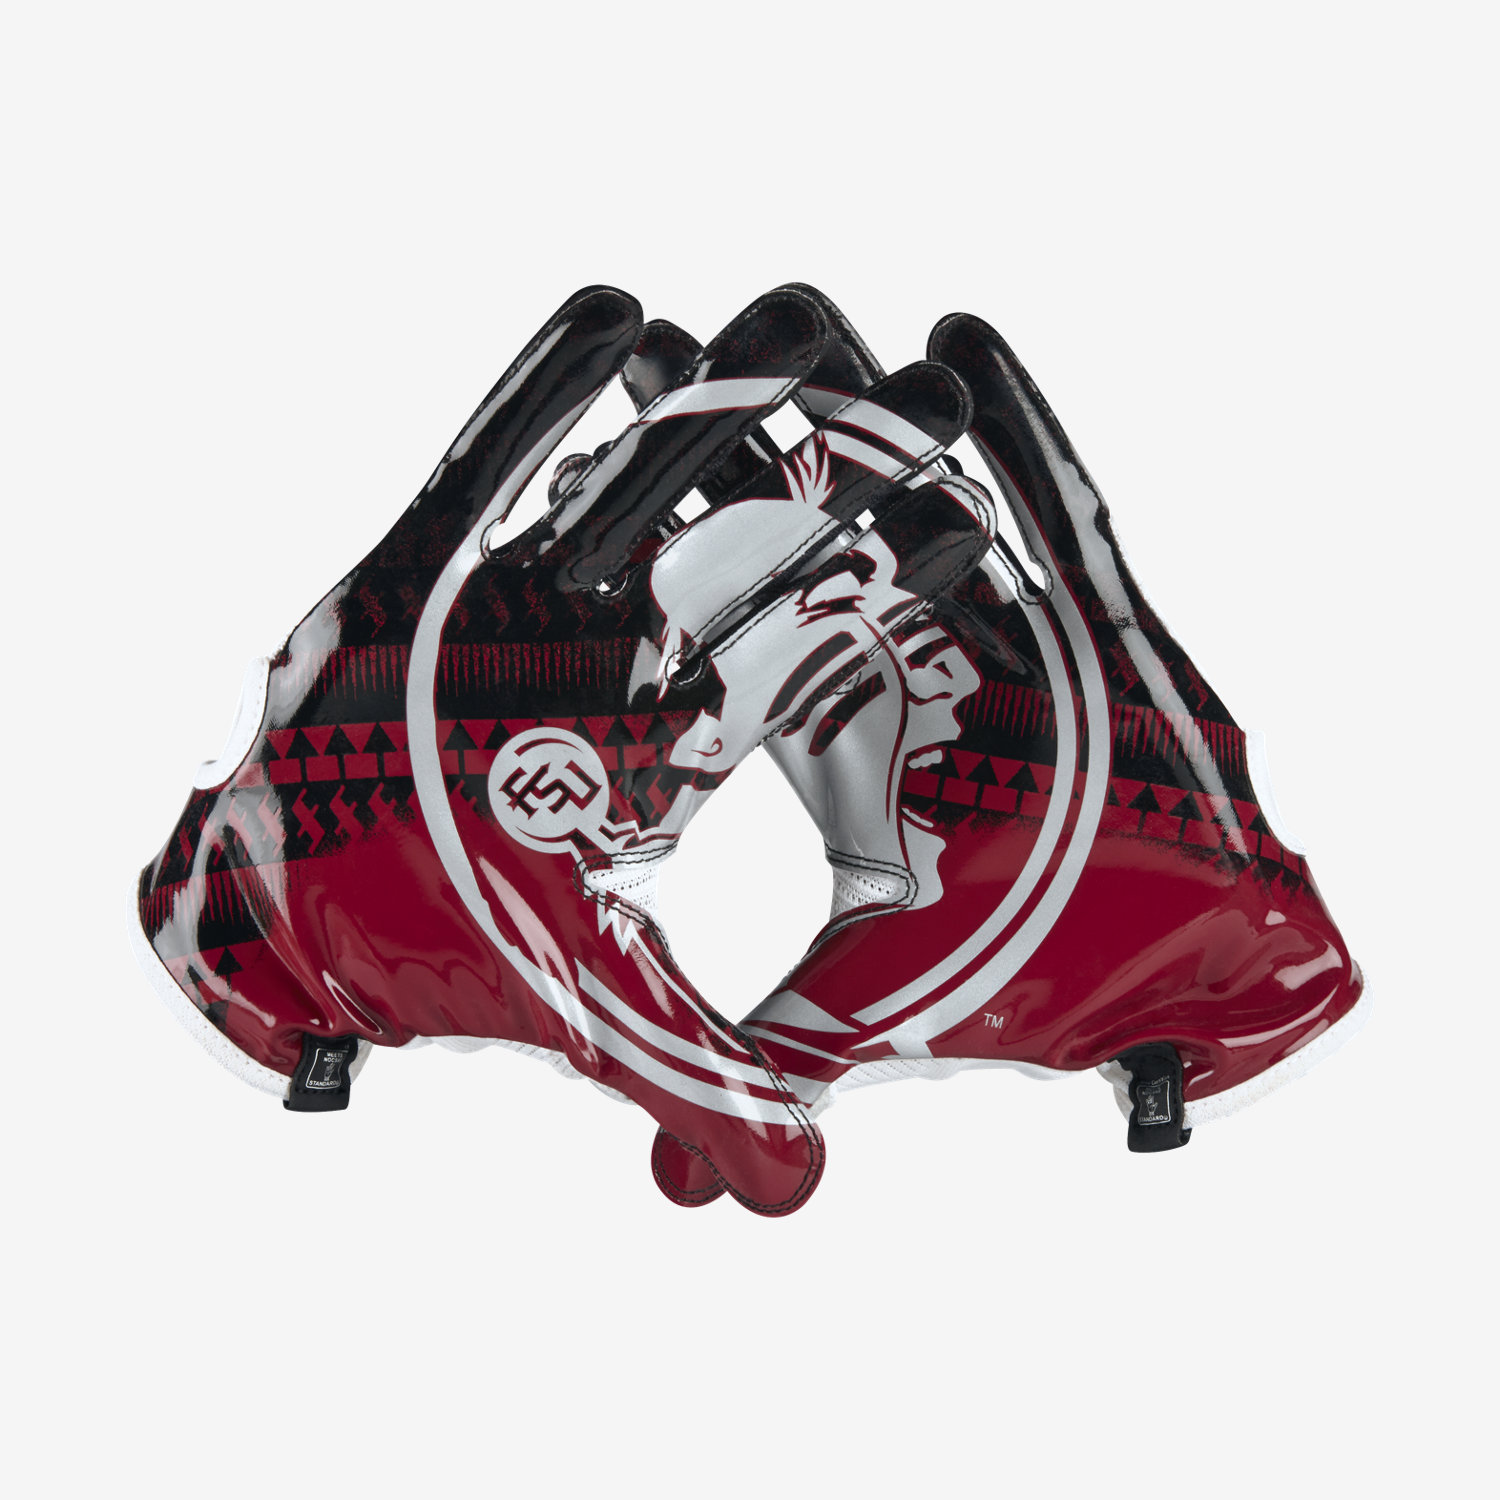 4f883f664b9 nfl football gloves for sale cheap   OFF45% The Largest Catalog ...